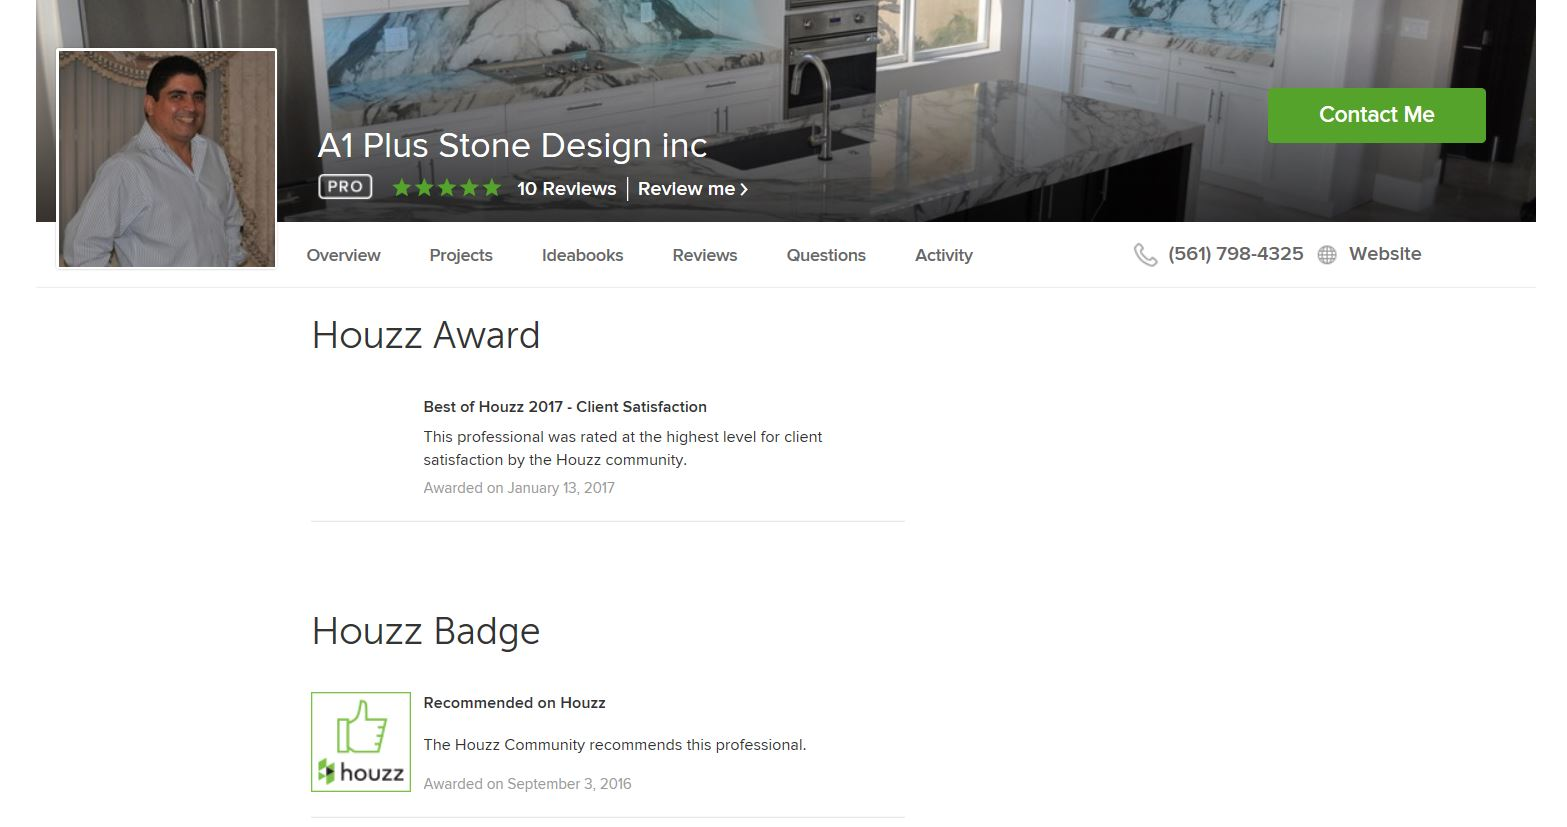 houzz bagde recommended best on 2017 award (002)